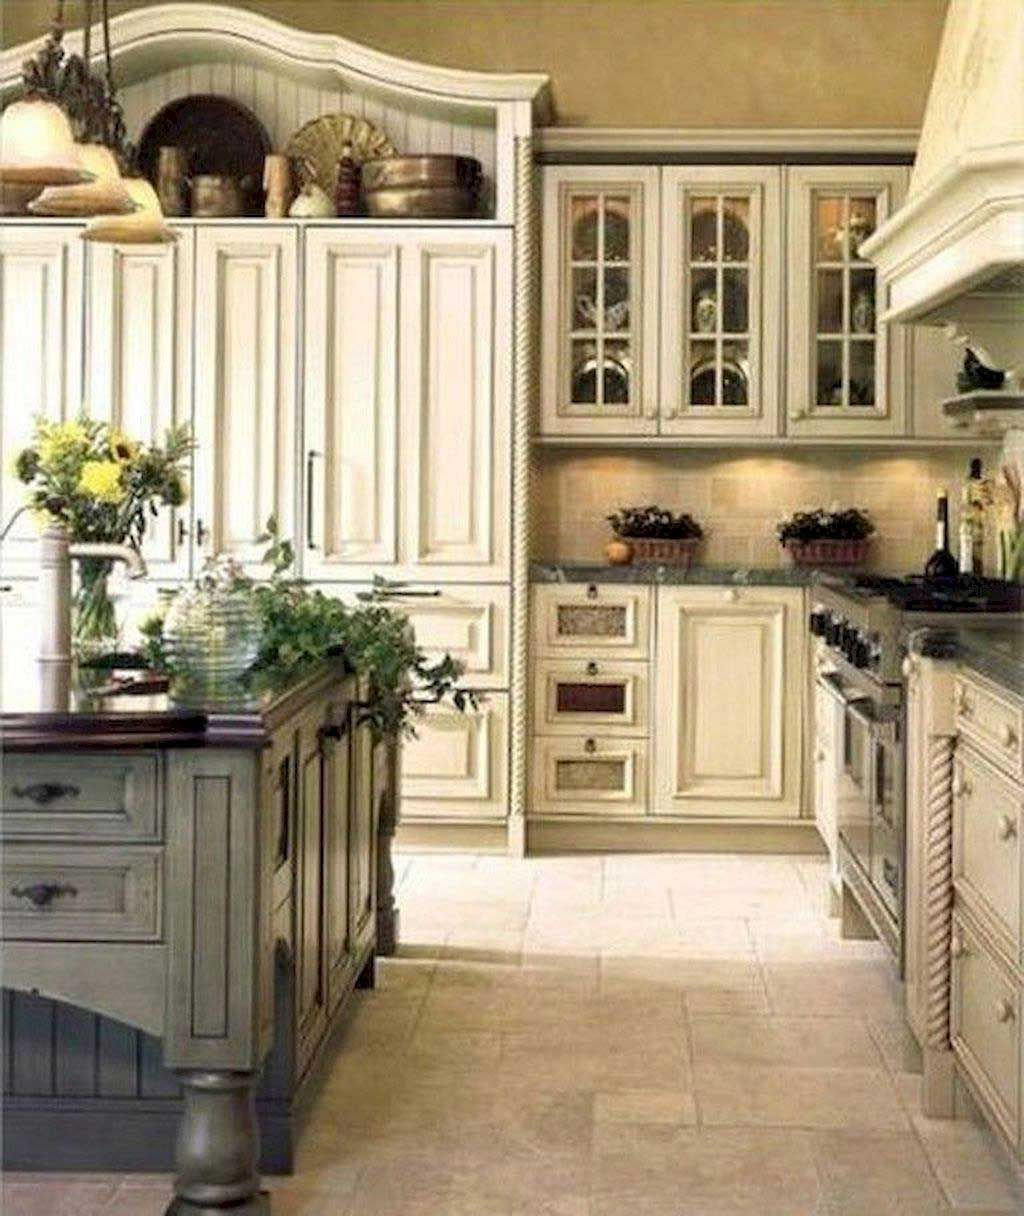 33 Modern Country Home Decor Ideas 18 For Your Living Room Best Inspiration Ideas That You Want In 2020 French Country Decorating Kitchen French Country Kitchens Country Kitchen Designs